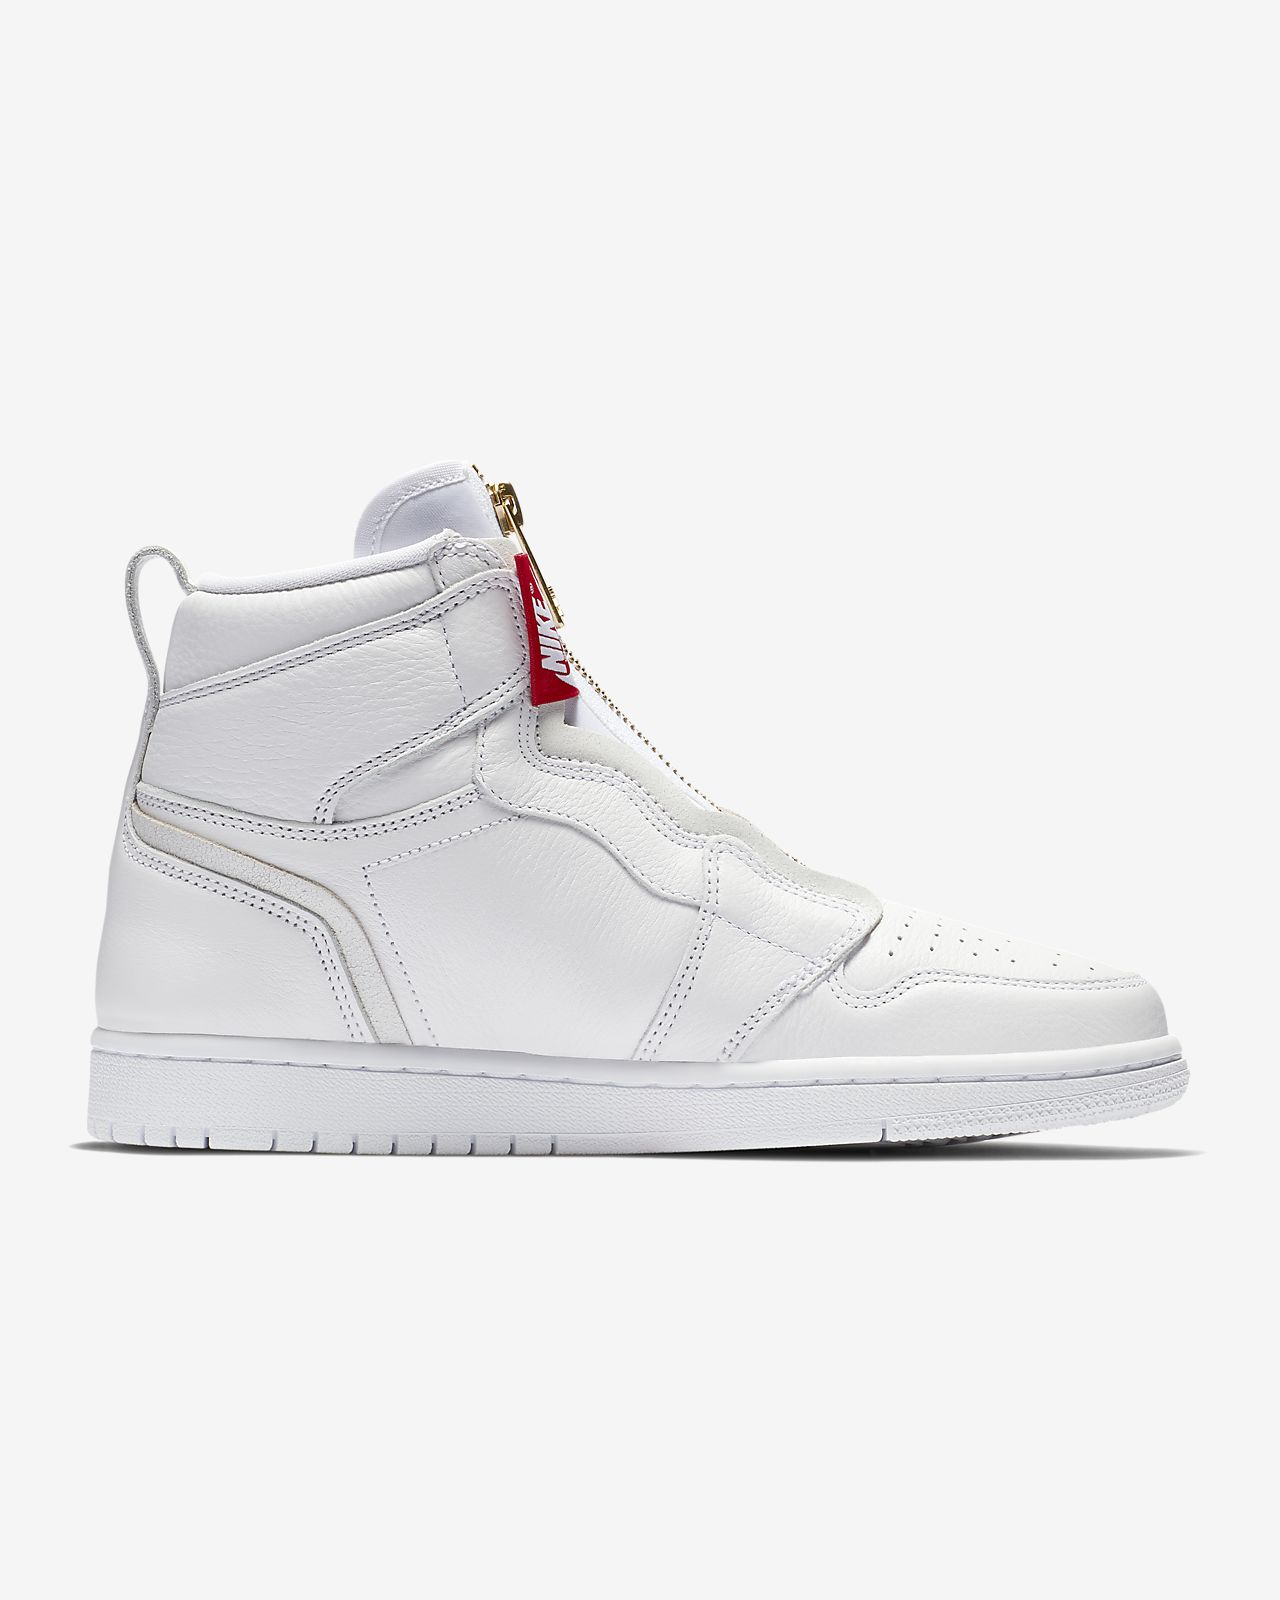 Nike Wmns Air Jordan 1 High Zip I Women Shoes Sneakers Pick 1